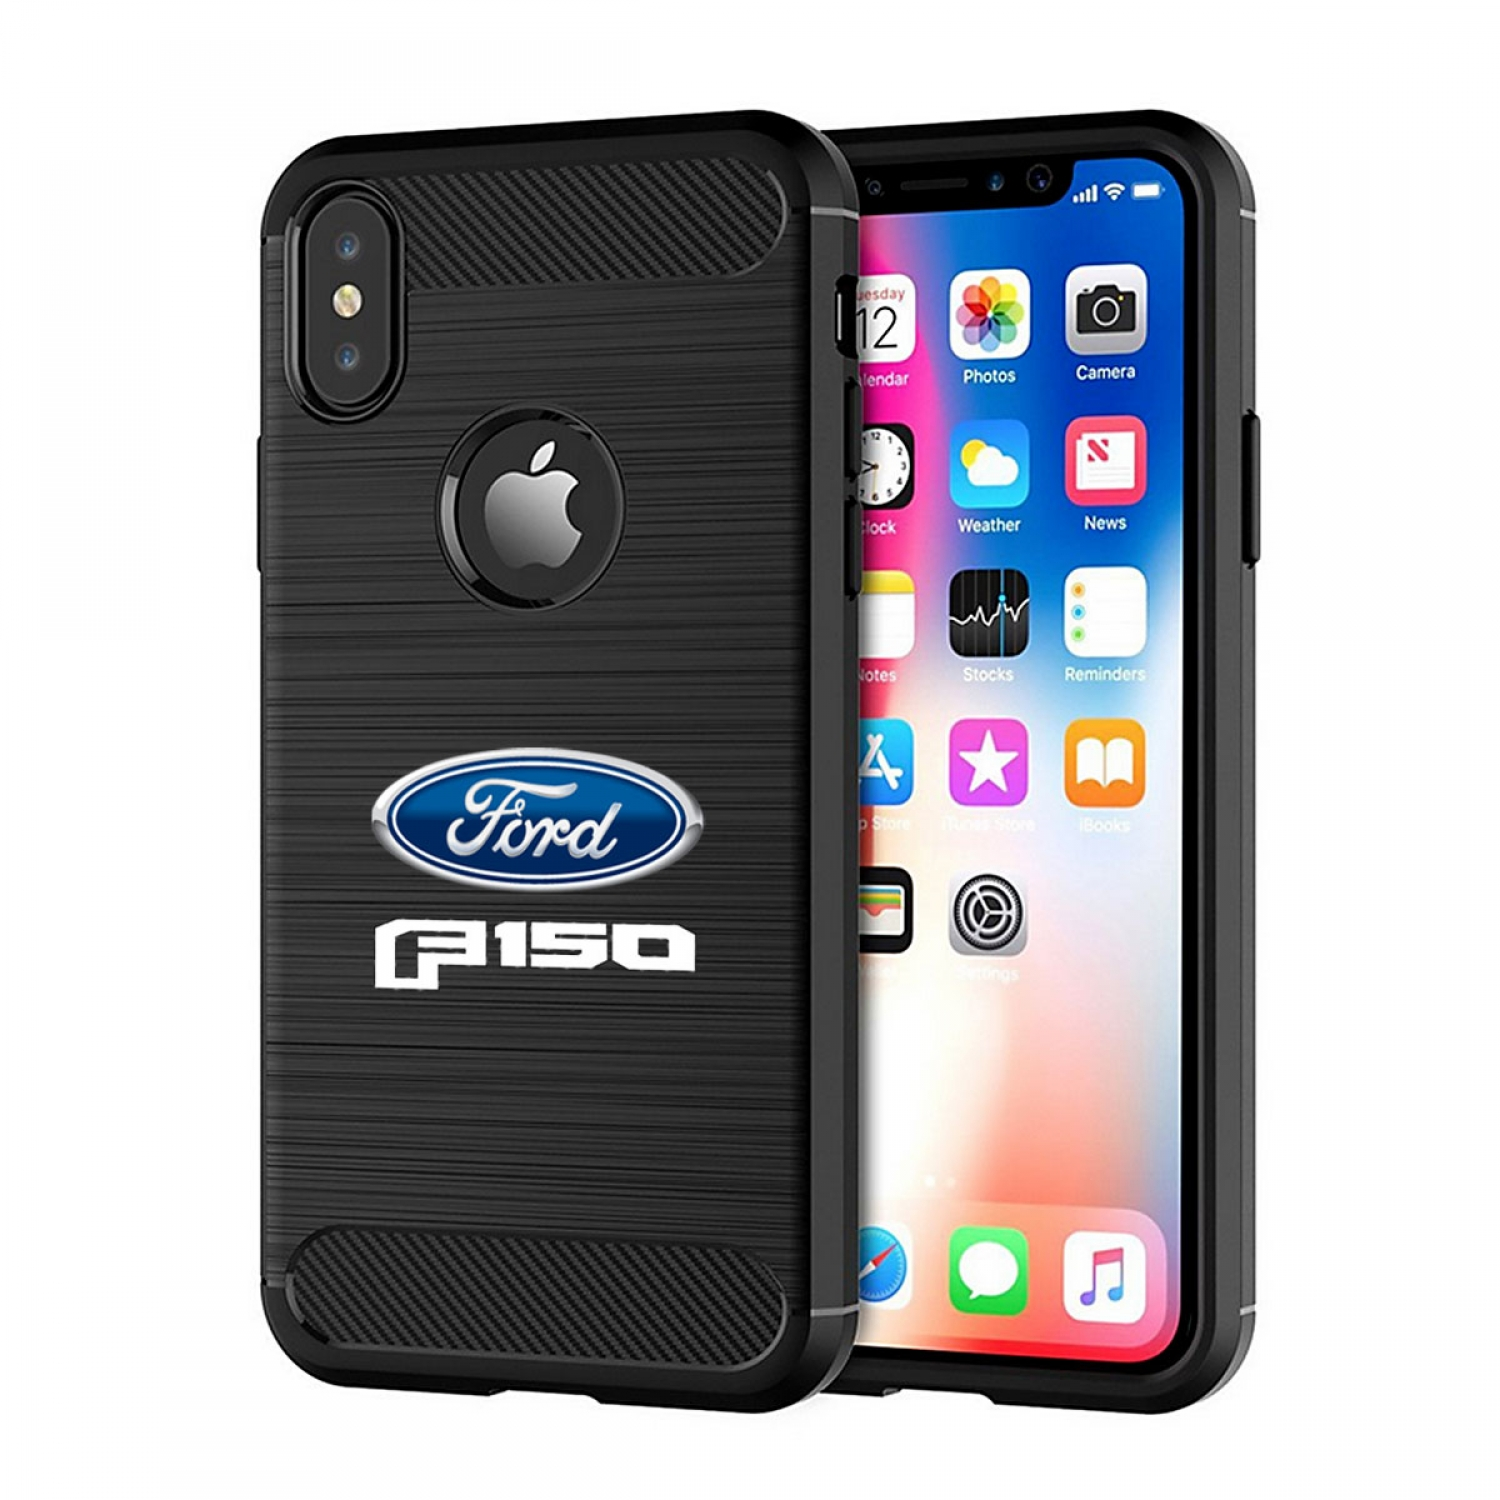 Ford F150 2015 iPhone X TPU Shockproof Black Carbon Fiber Textures Stripes Cell Phone Case